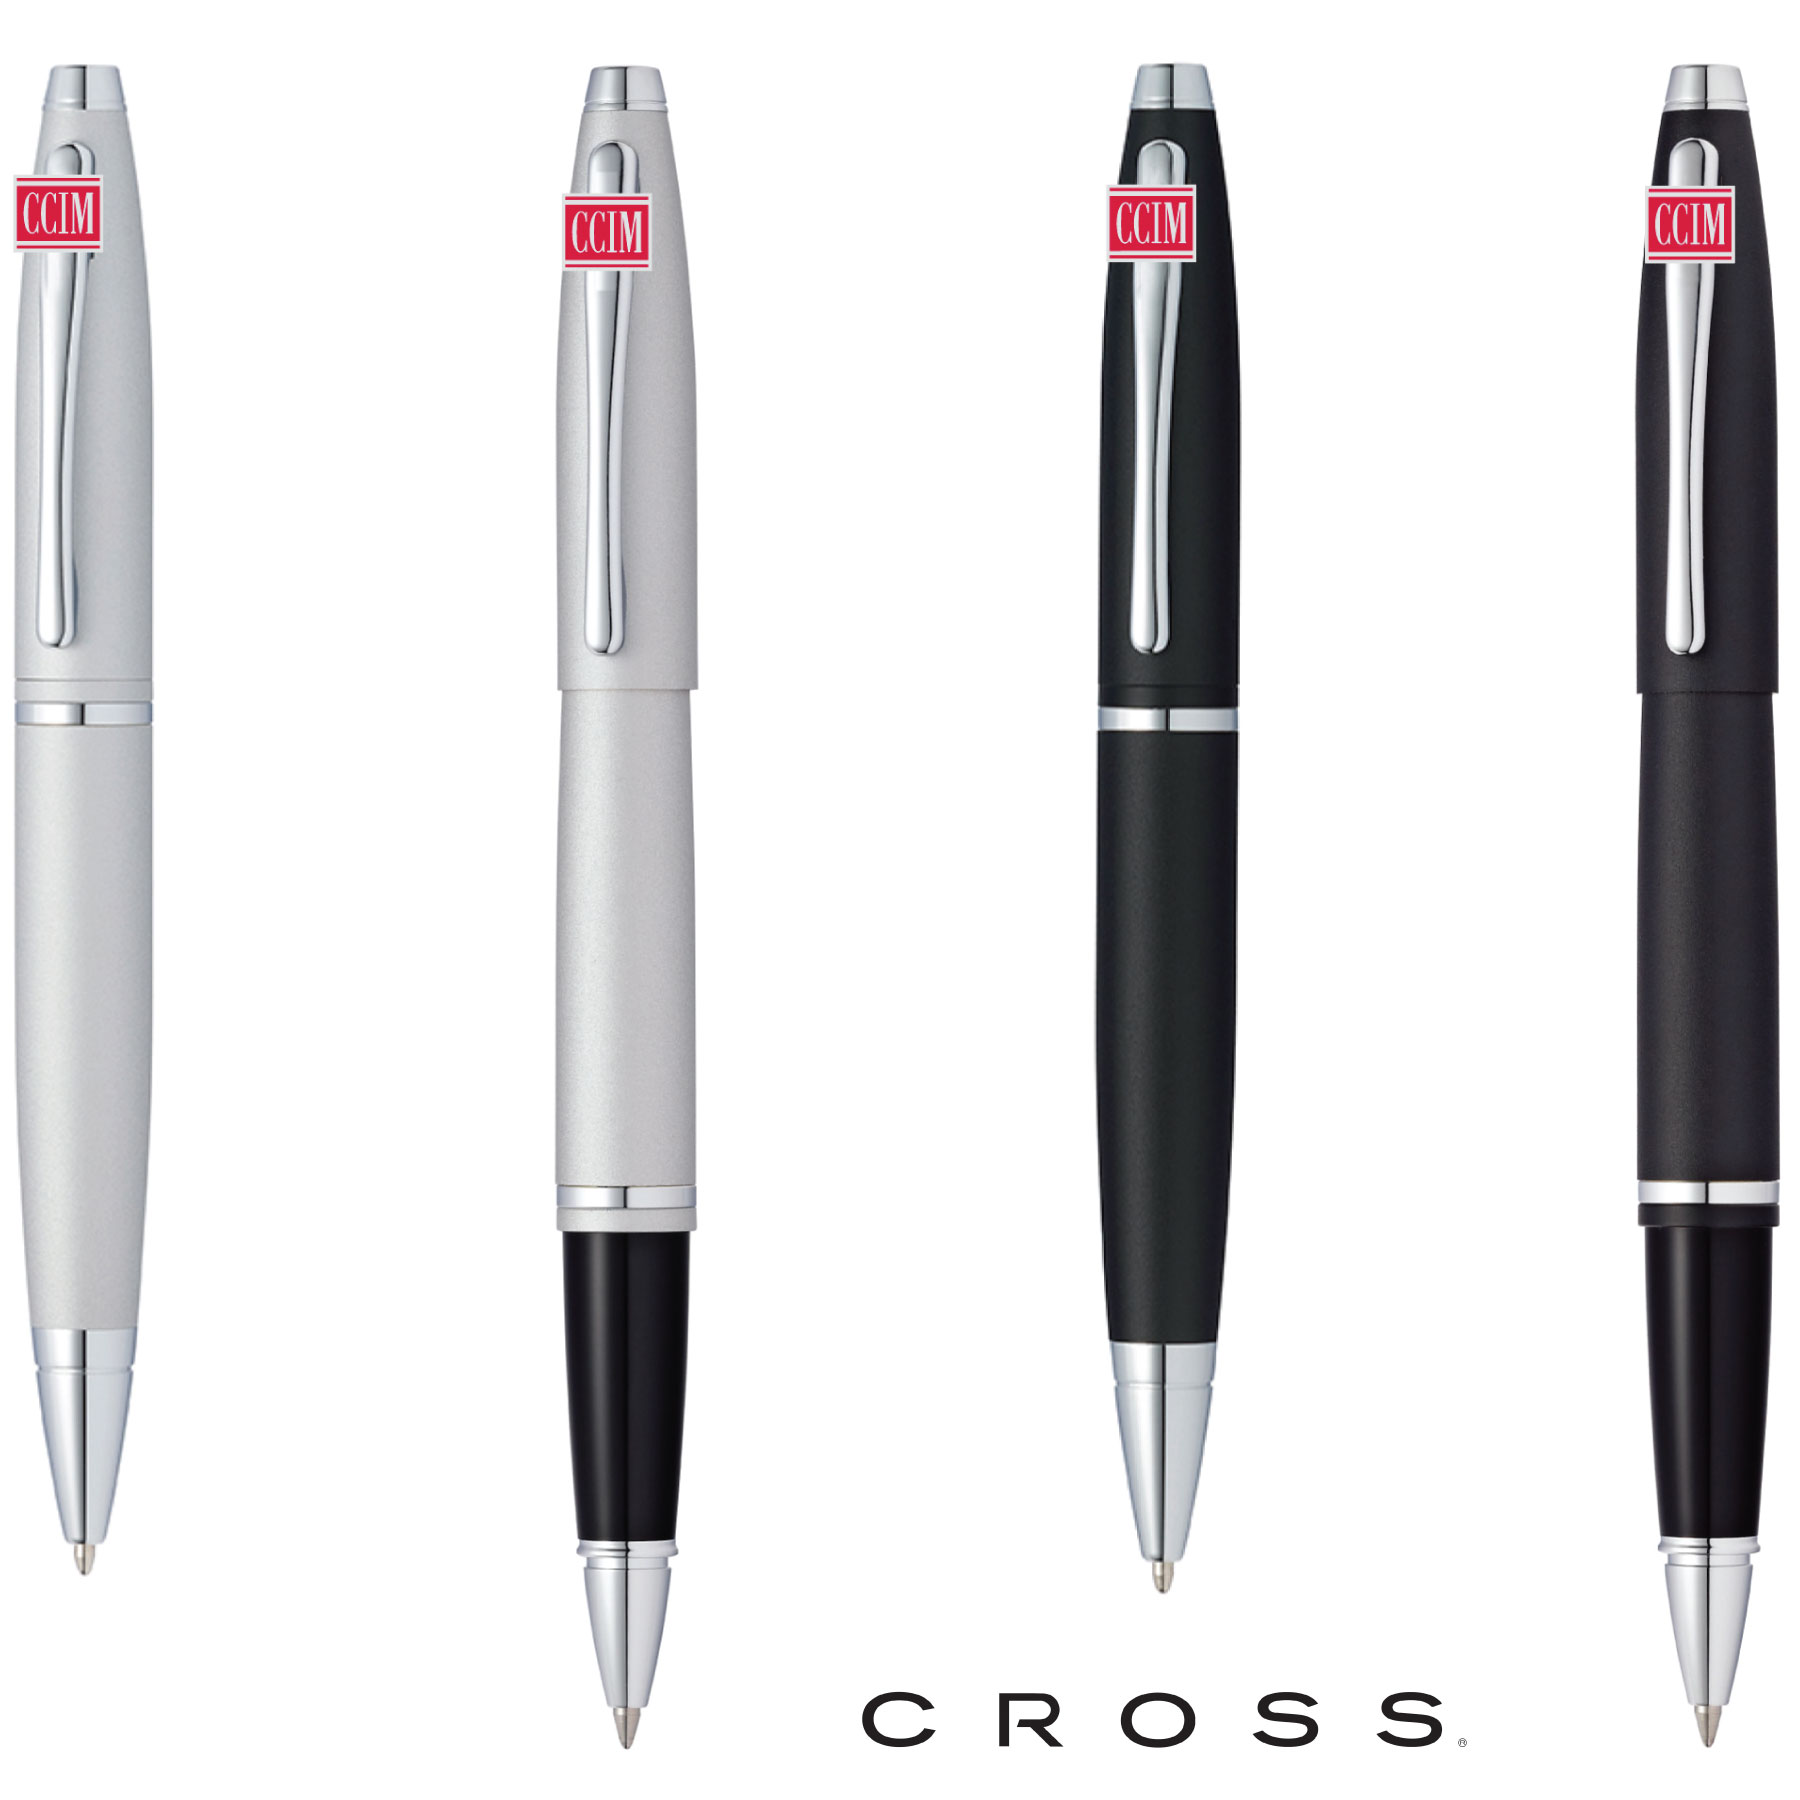 Cross® Calais Pen Set Cosses,Crosss,Pens,Quills,Crosses